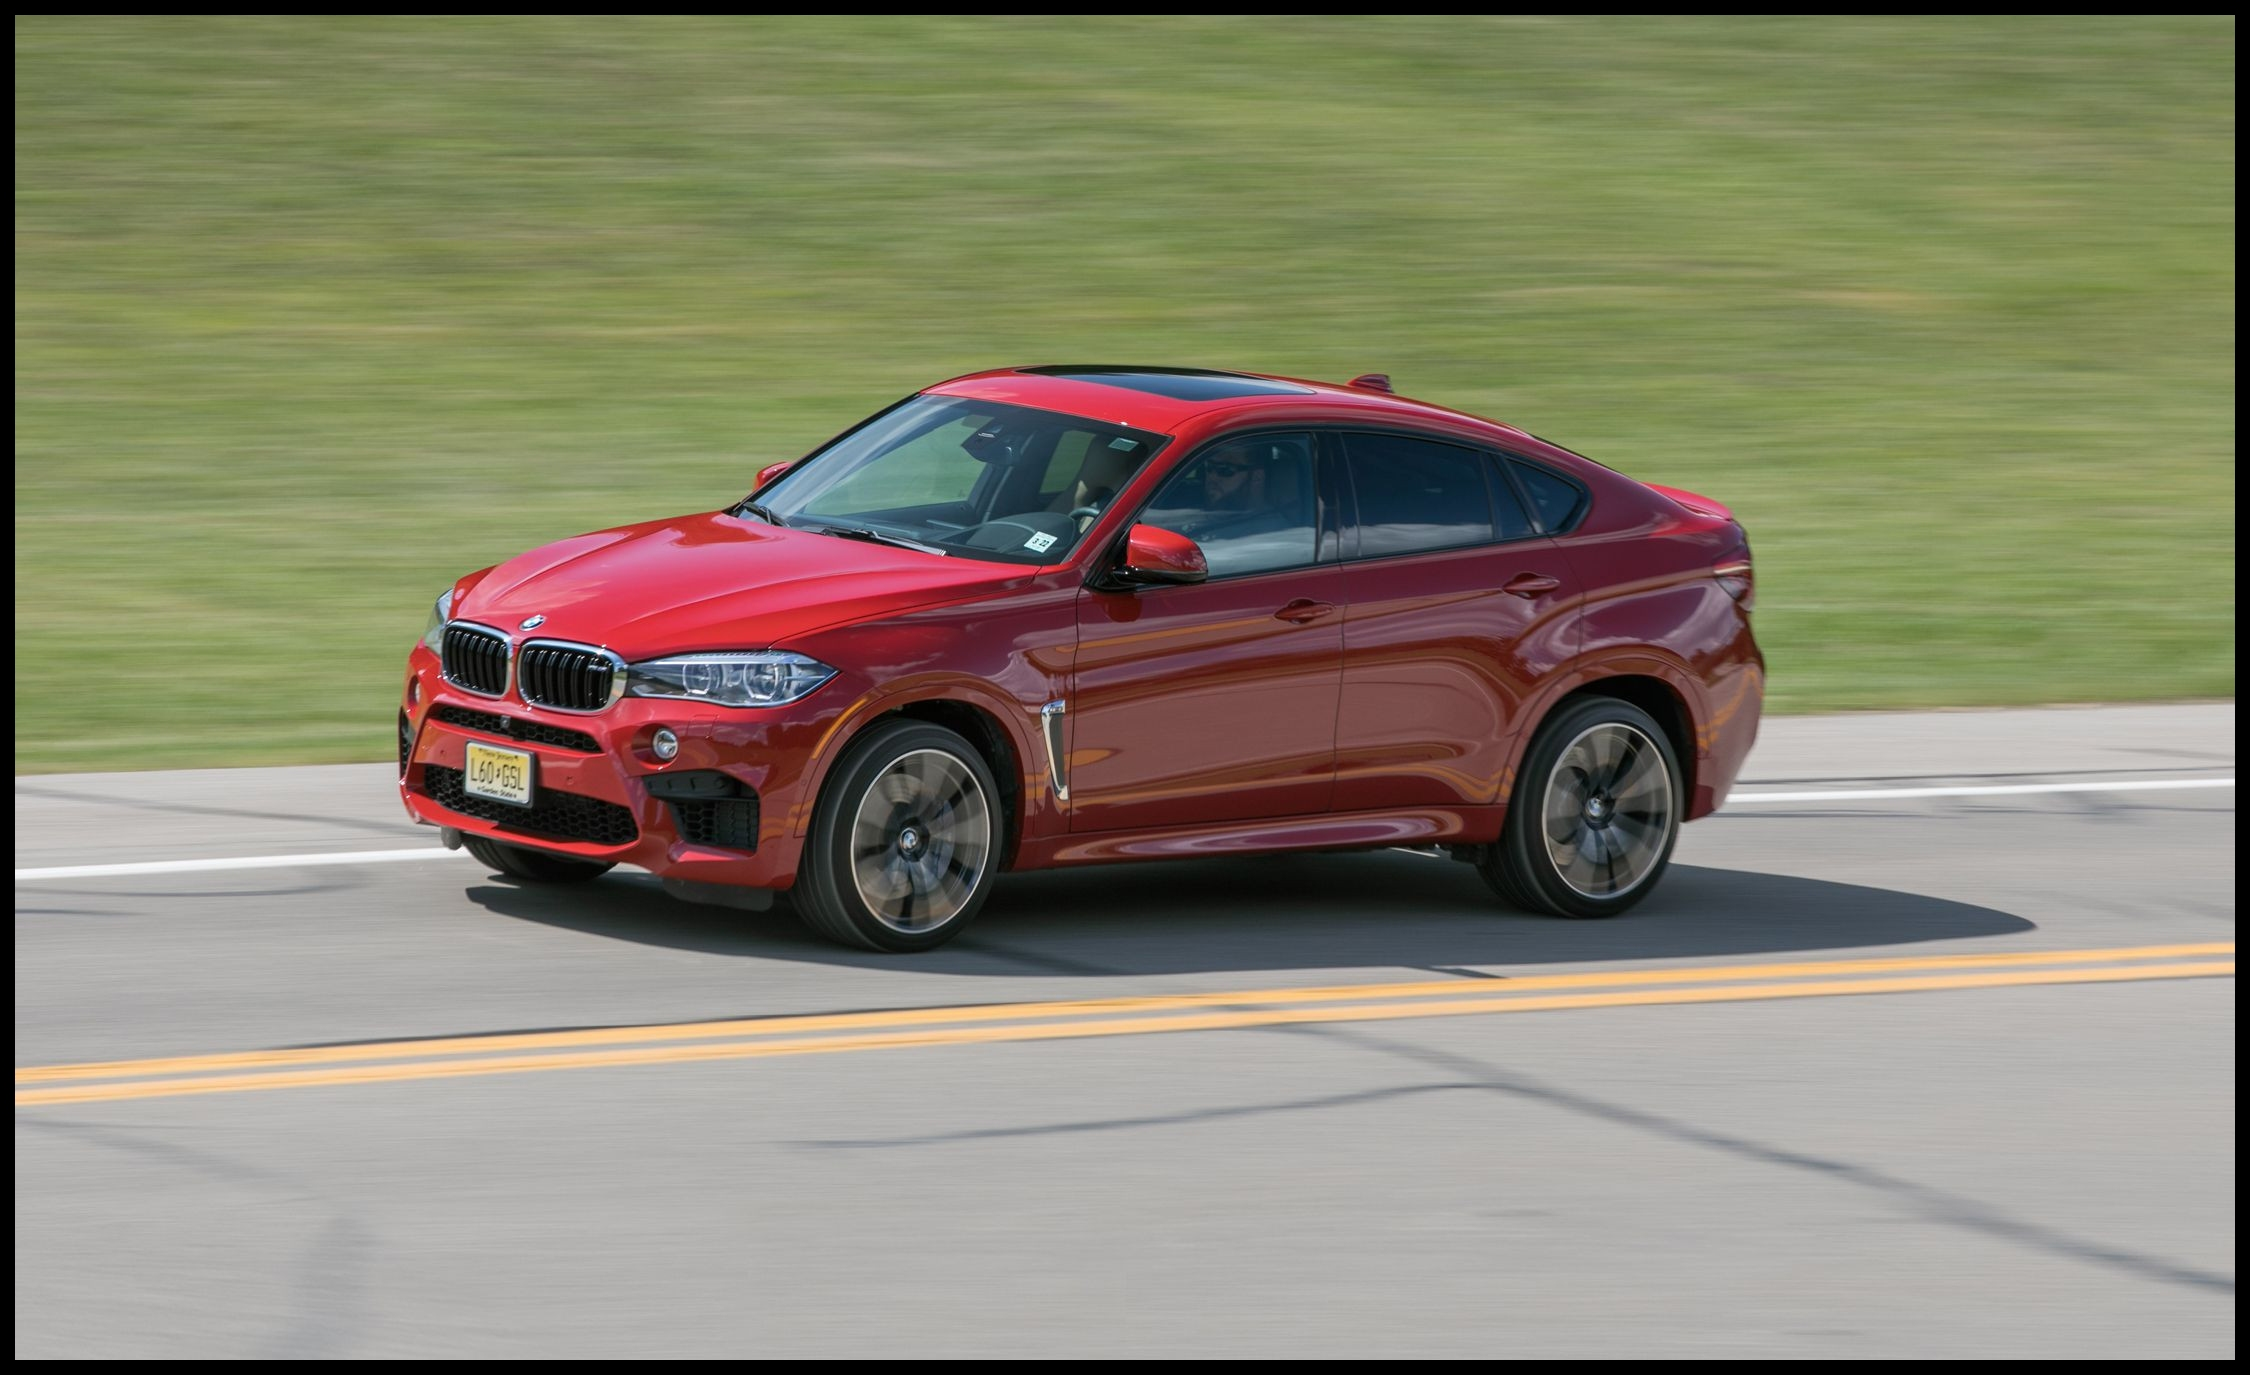 Bmw 0 60 Awesome Bmw X6 M Reviews Bmw X6 M Price S and Specs